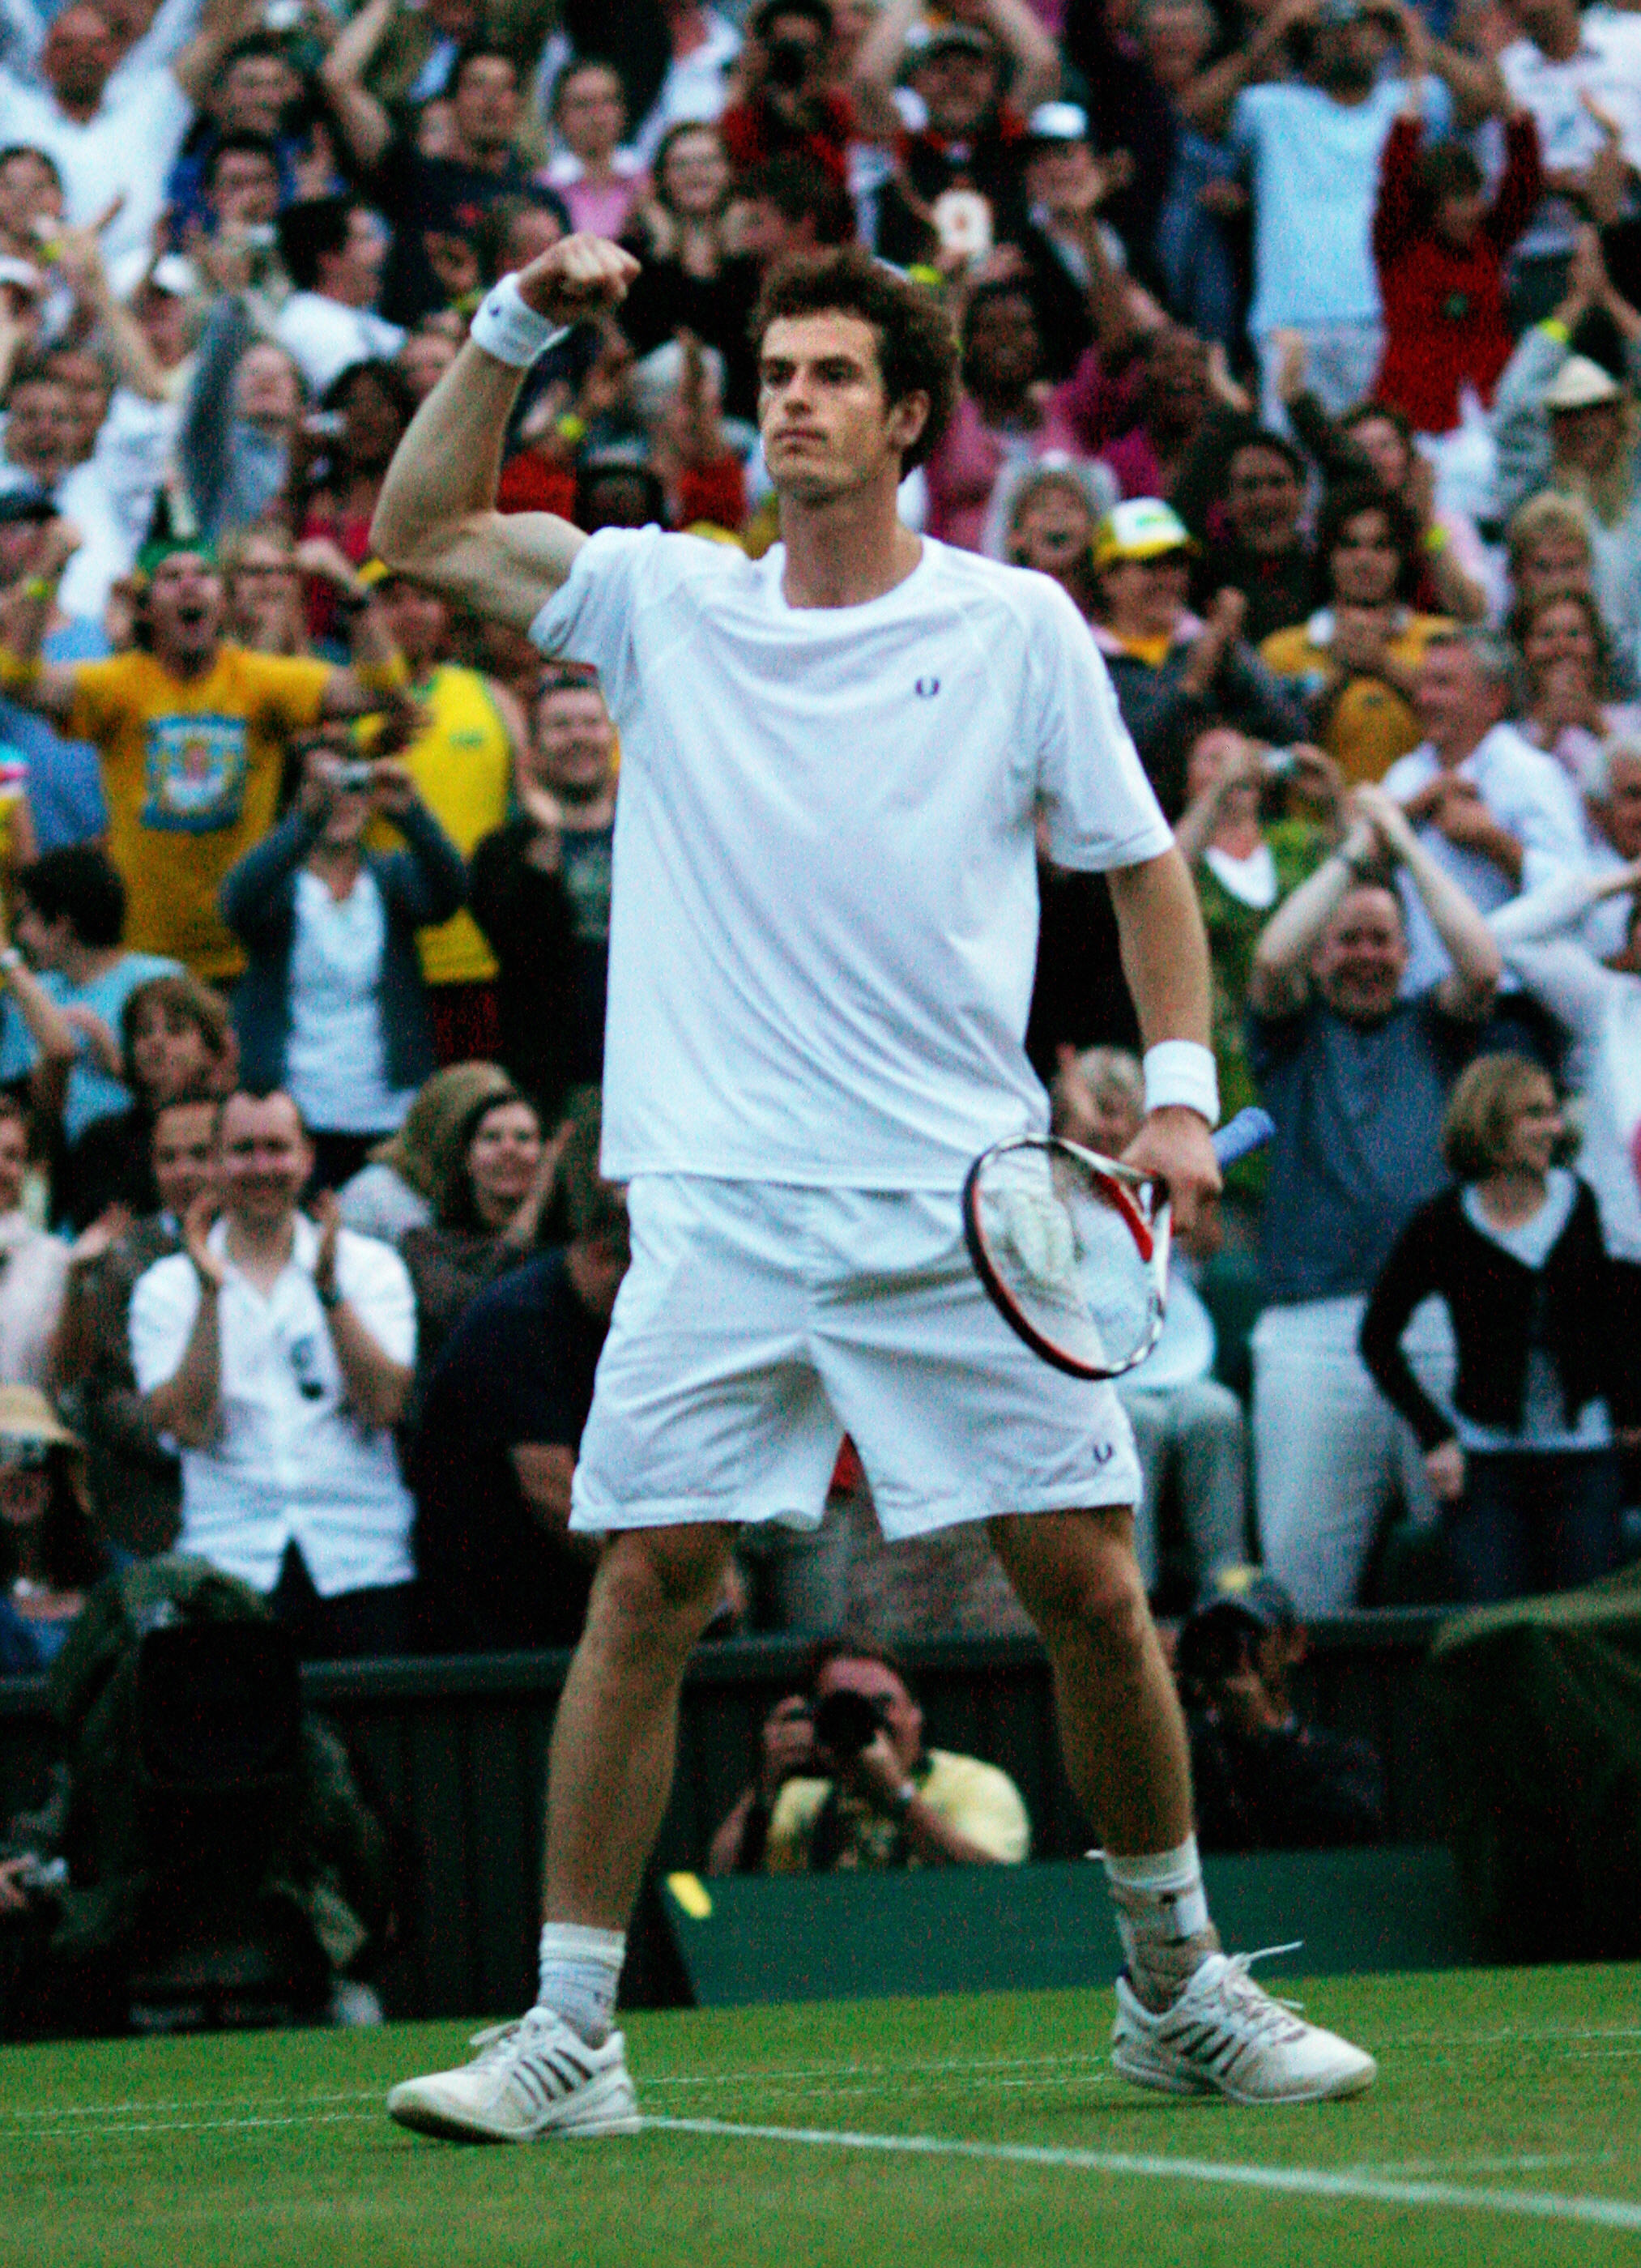 In all-white, during one of his most memorable wins at Wimbledon. He rallied from 0-2 down to beat Richard Gasquet as light began to fade on Centre Court.